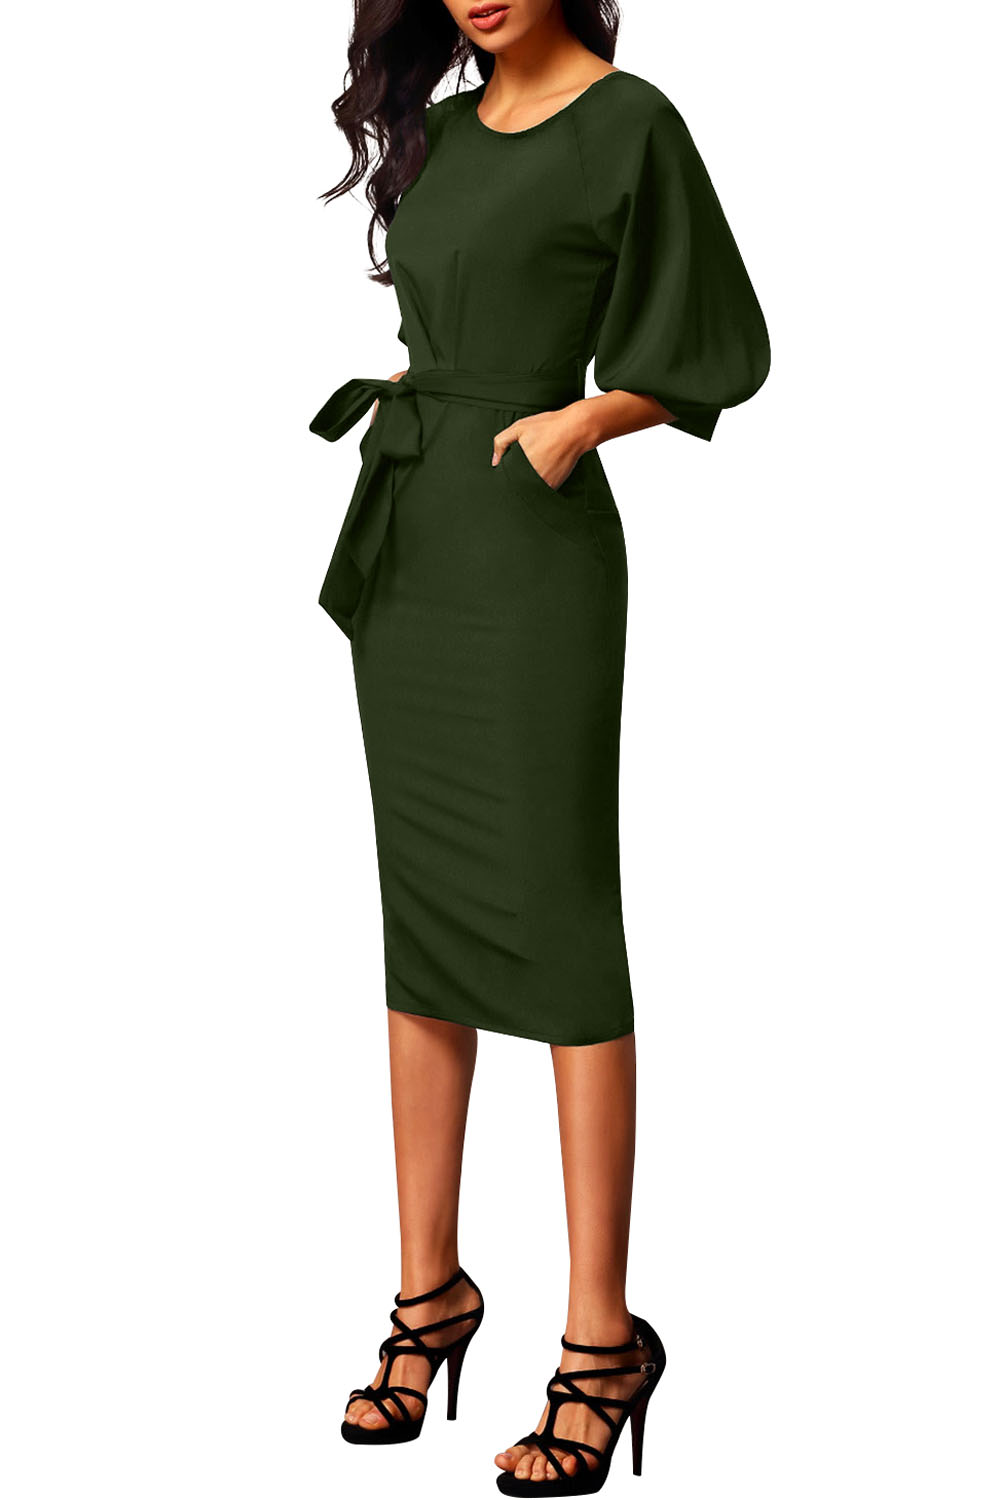 BY61691-9 Army Green Puff Sleeve Belt Chiffon Pencil Dress